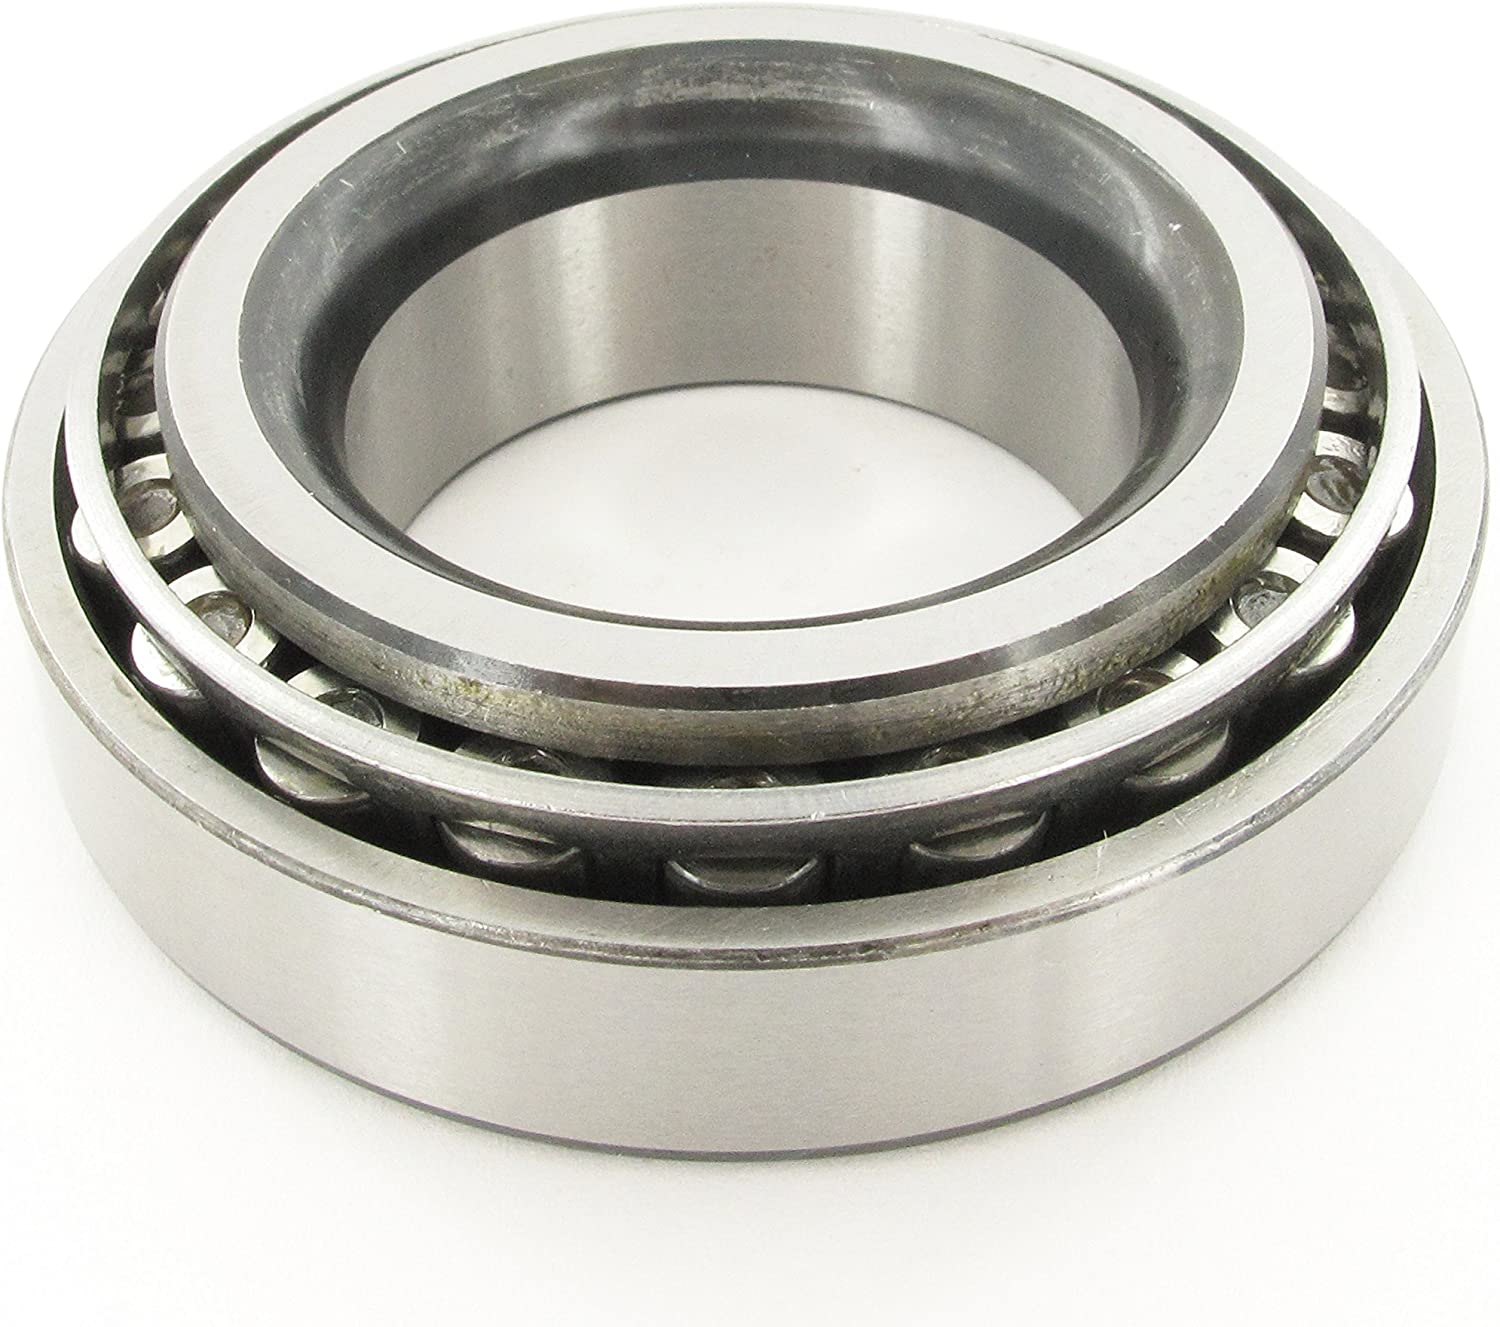 SKF USA BR6 VP Roller Bearing (Tapered Set Includes Bearing and Race)